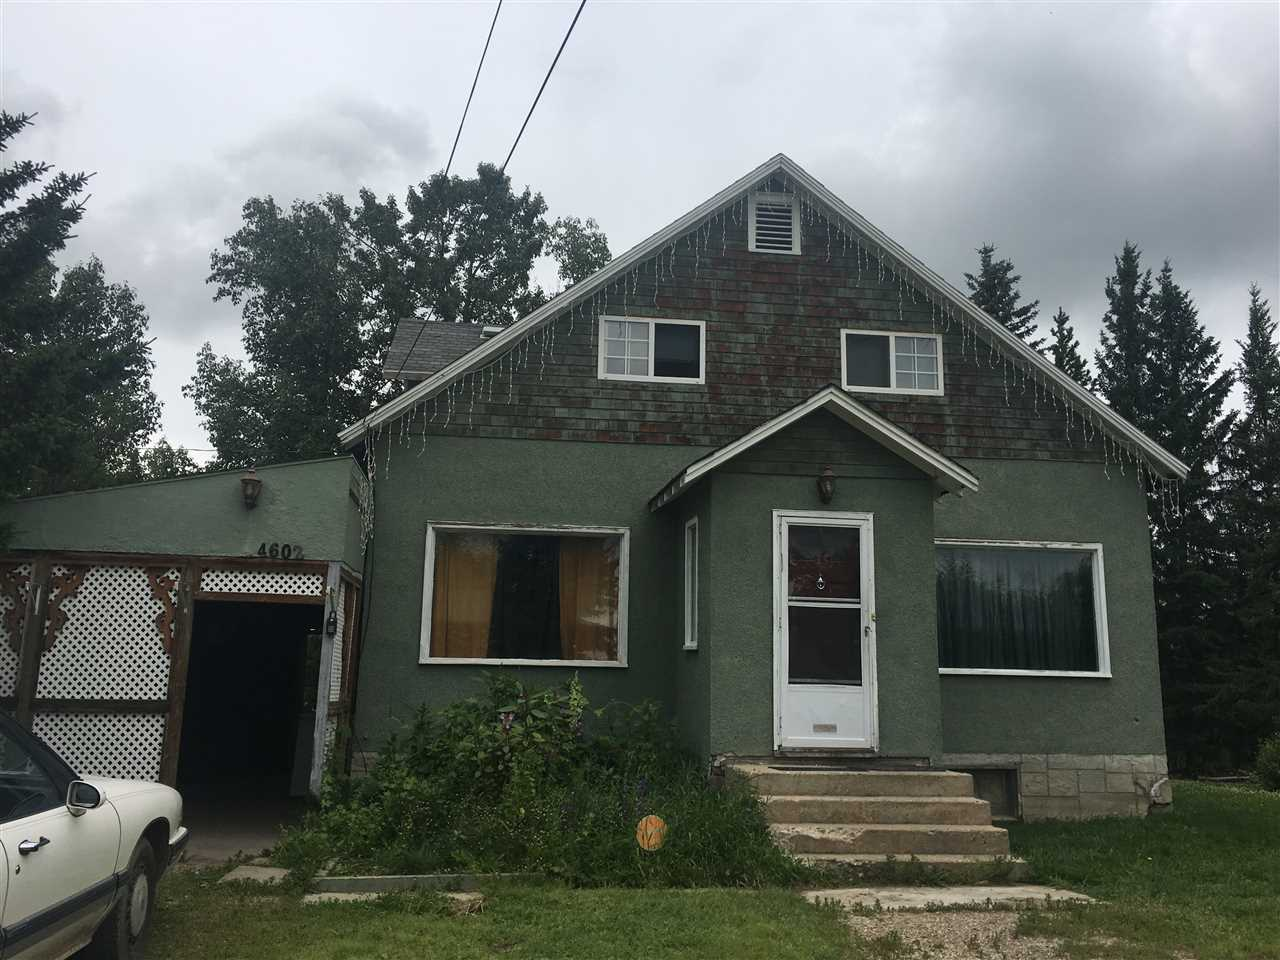 MLS® listing #E4169181 for sale located at 4602 52 Avenue